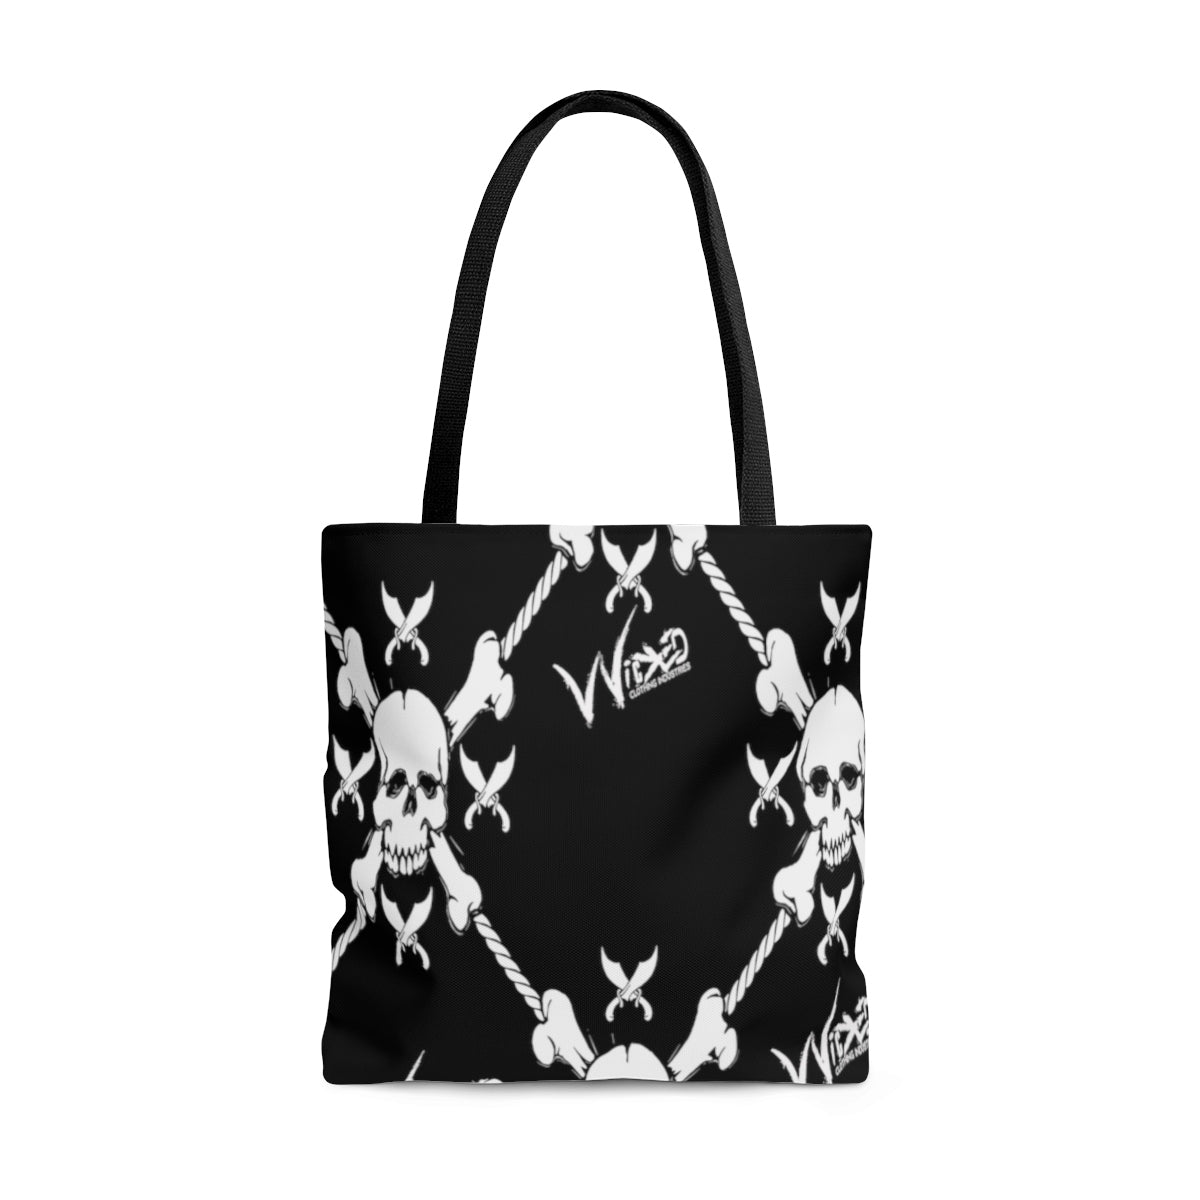 AOP Tote Bag Wicked Pirate